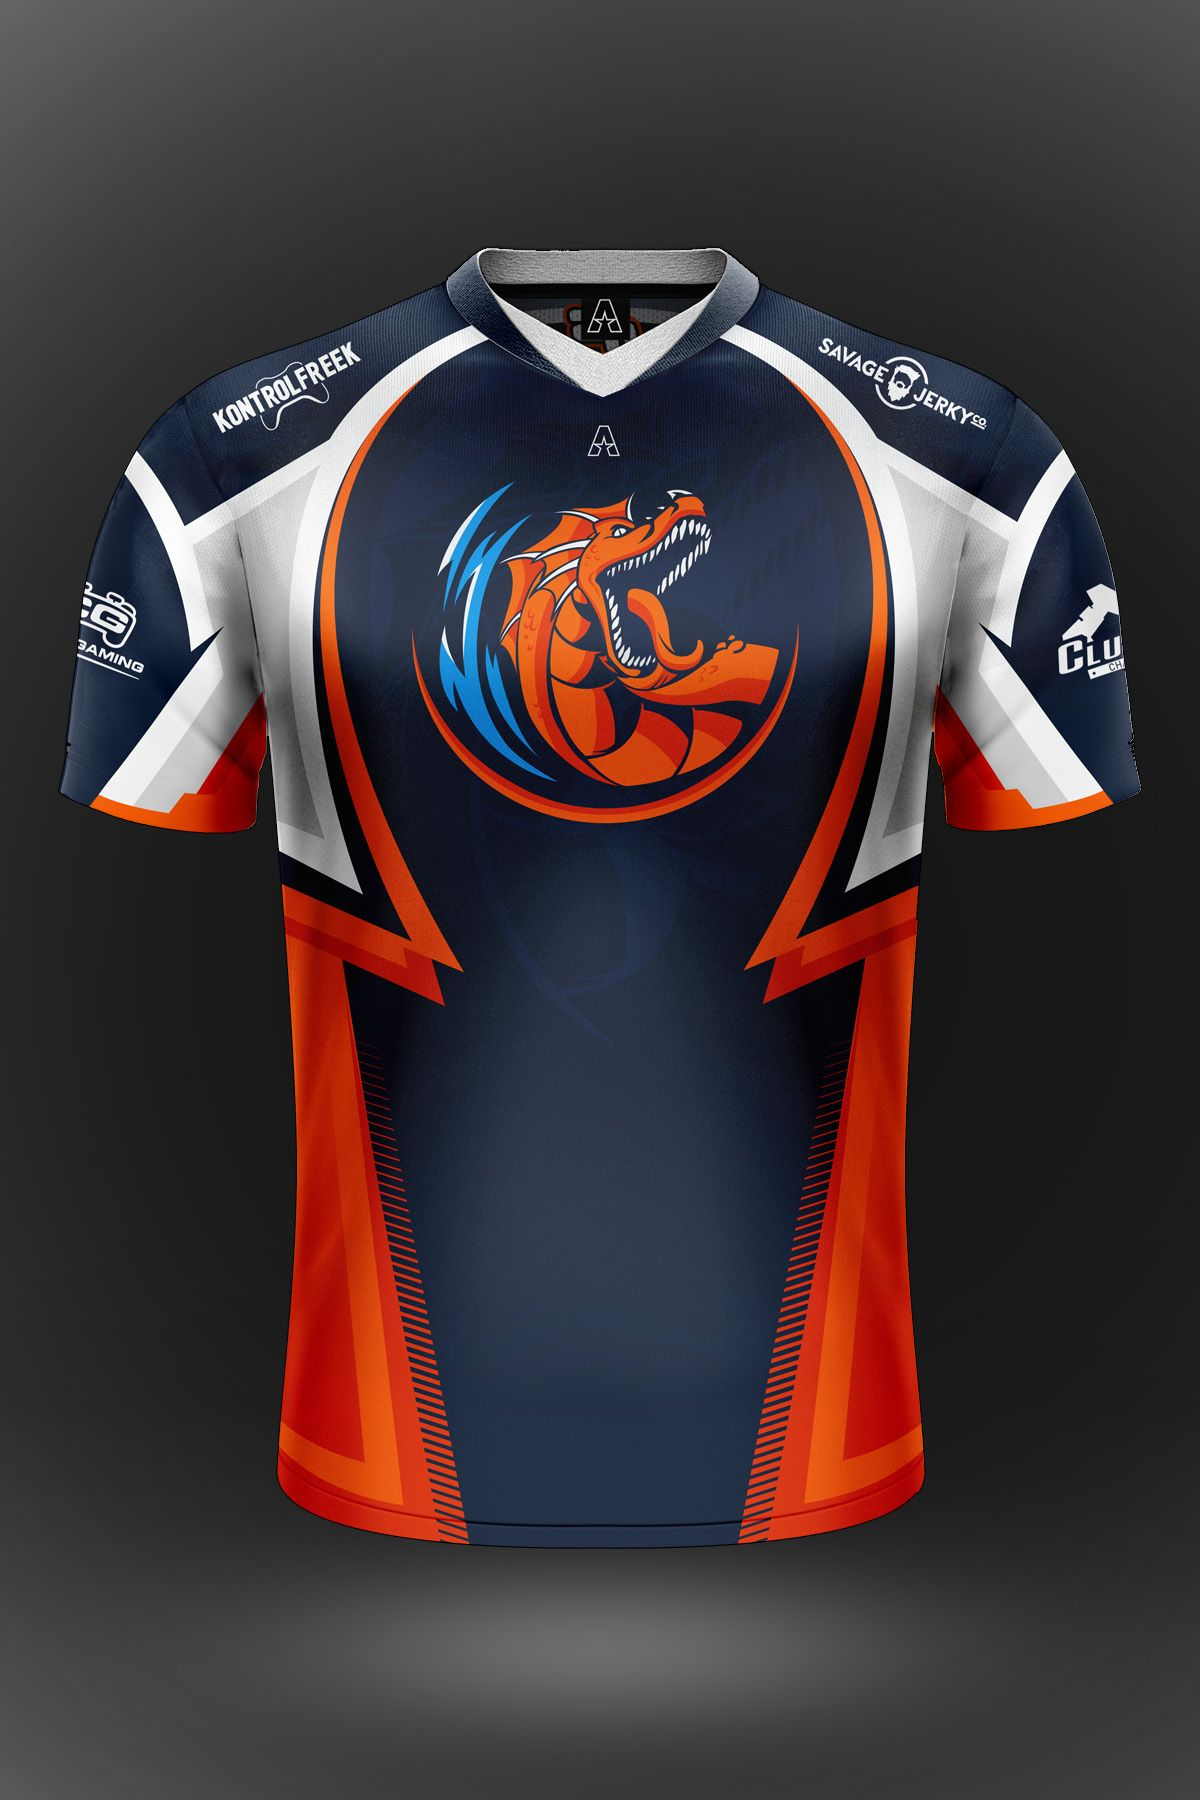 Onslaught Fierce Jersey Akquire Clothing Co Jersey Design Cycling Jersey Design Sport Shirt Design